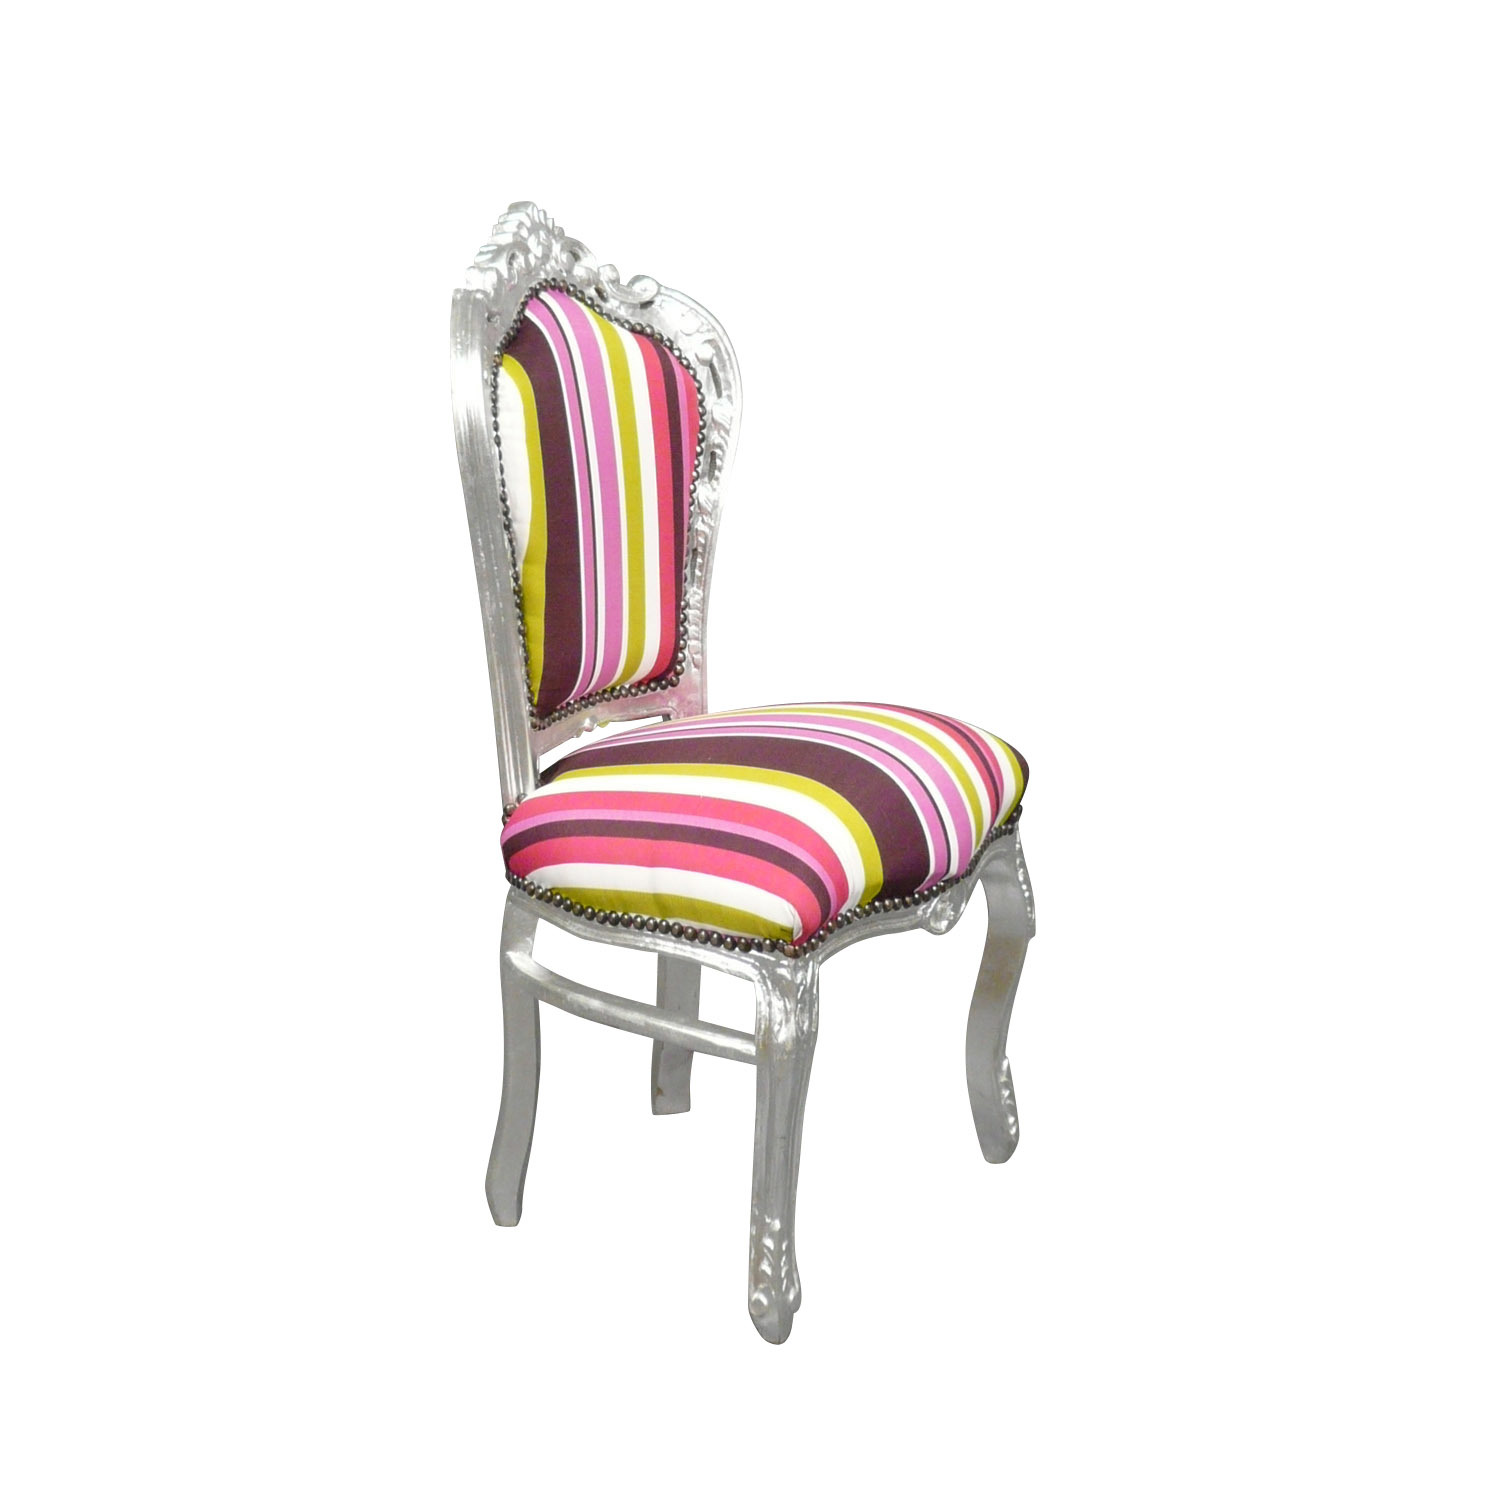 Chaise baroque galerie photos royal d corations - Prix d une chaise ...